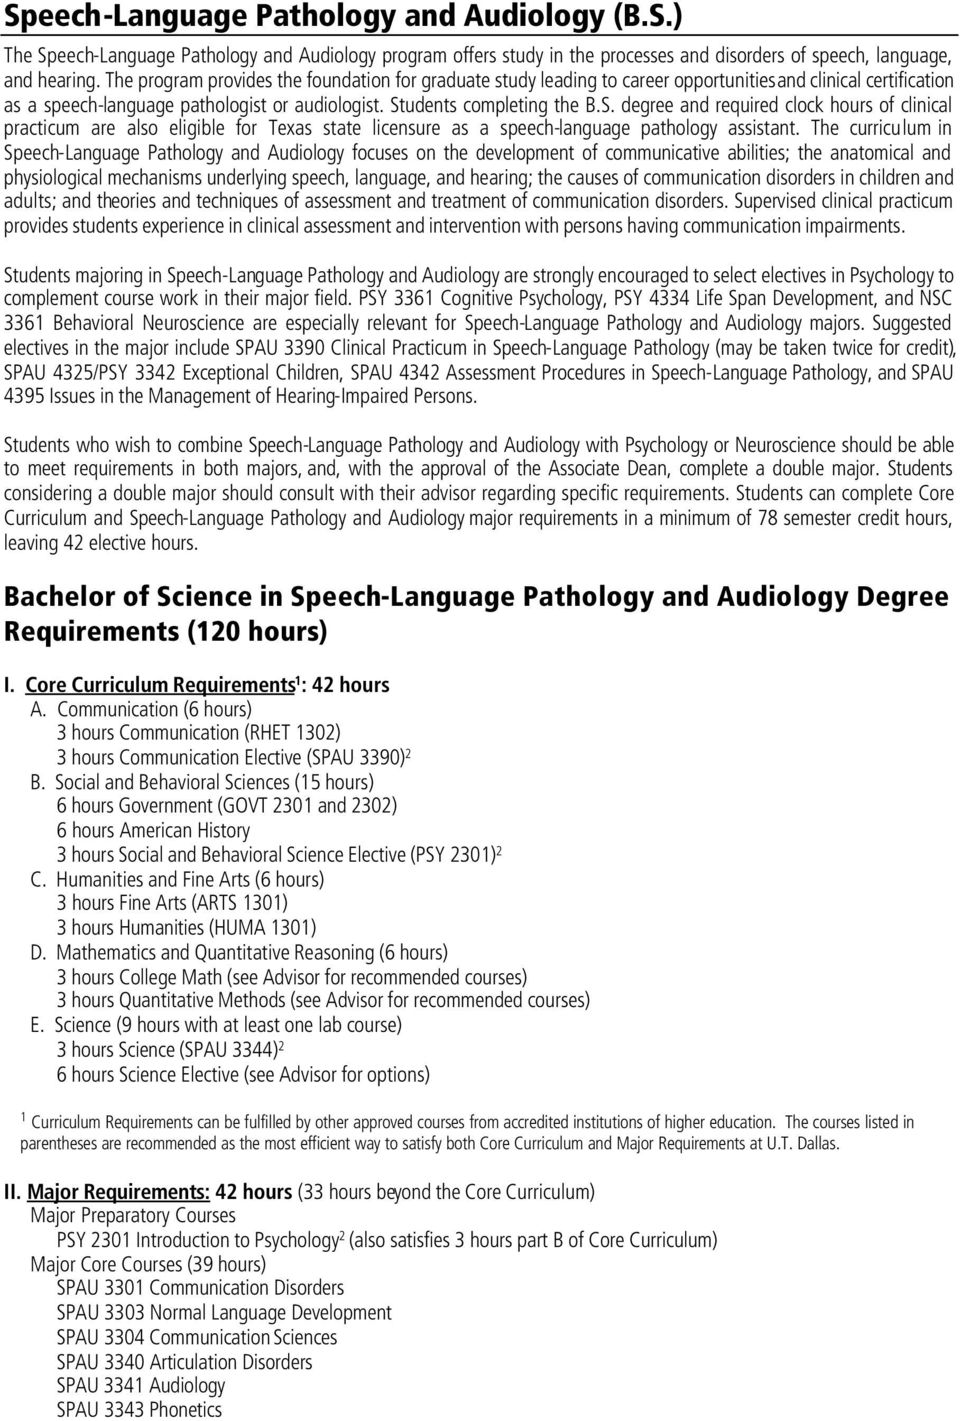 udents completing the B.S. degree and required clock hours of clinical practicum are also eligible for Texas state licensure as a speech-language pathology assistant.